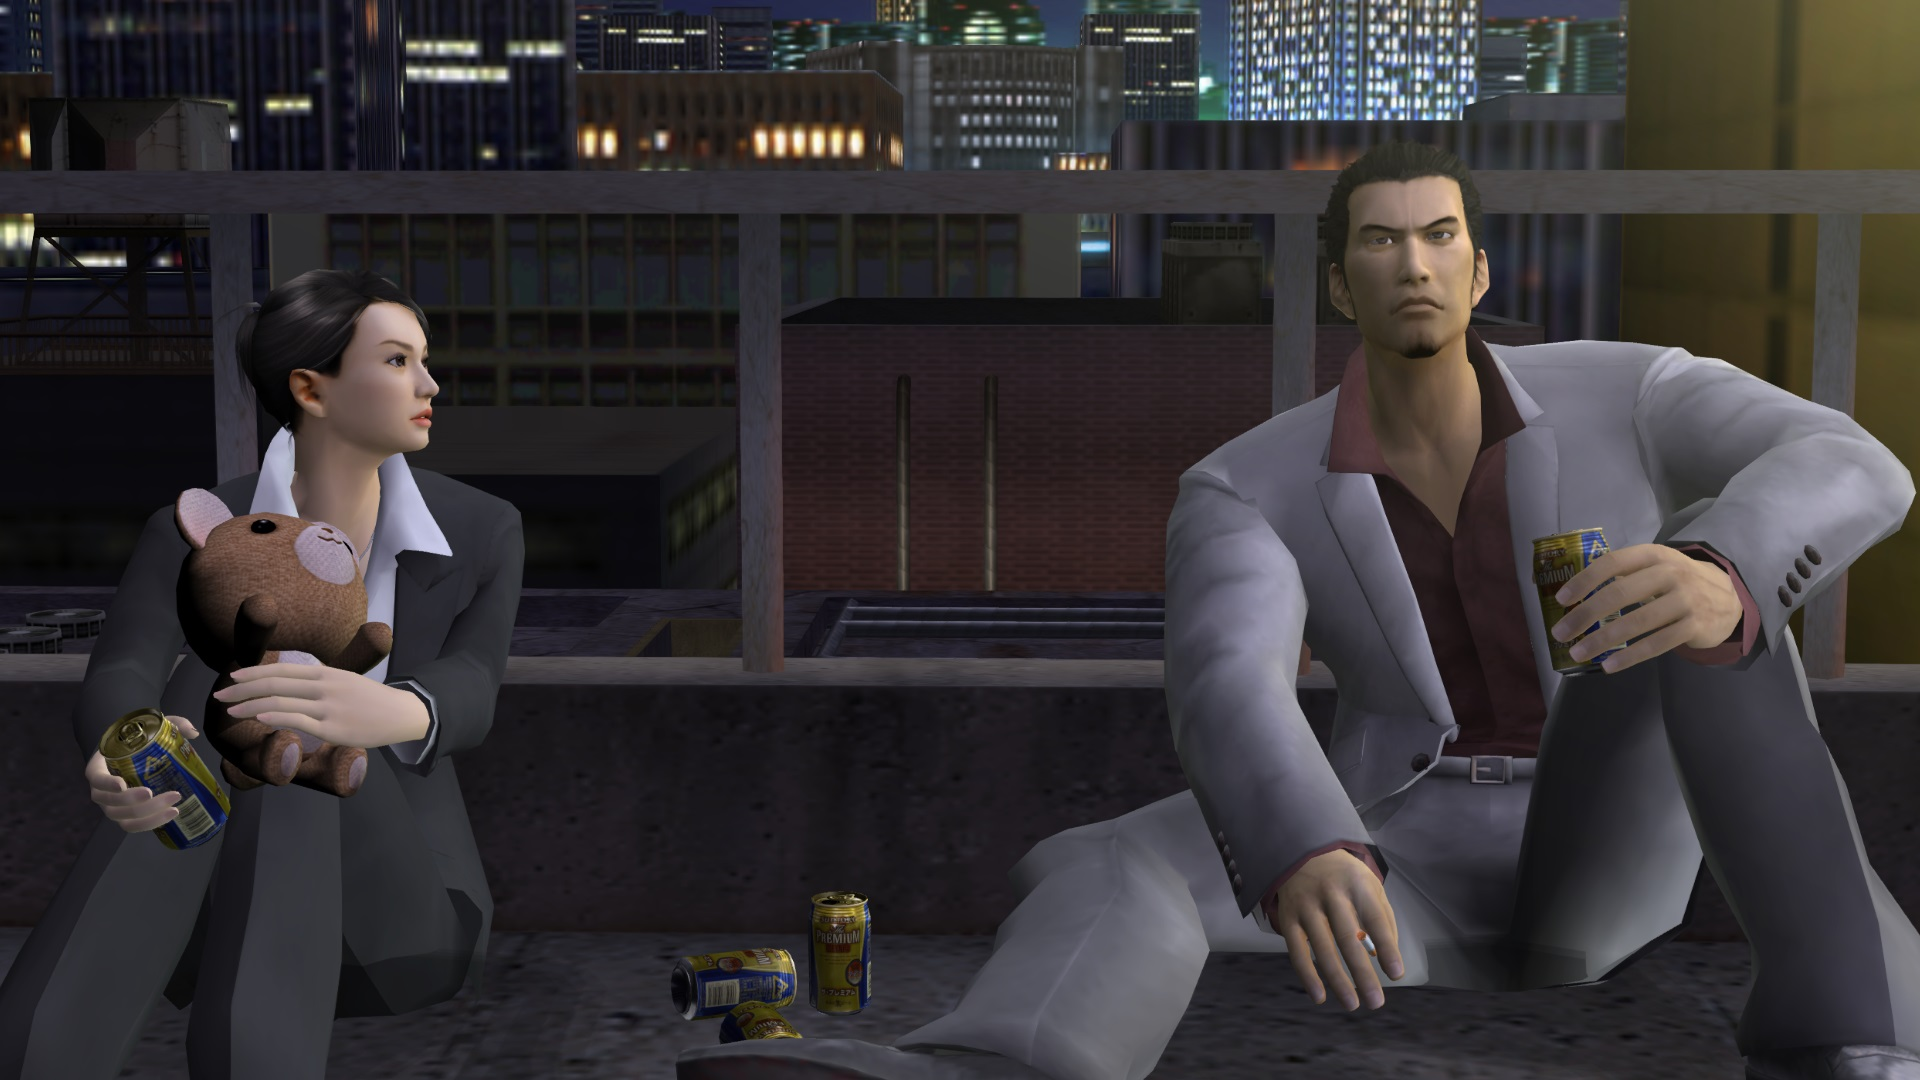 Yakuza: Kiwami 2 Officially Announced for PlayStation 4, Coming This December